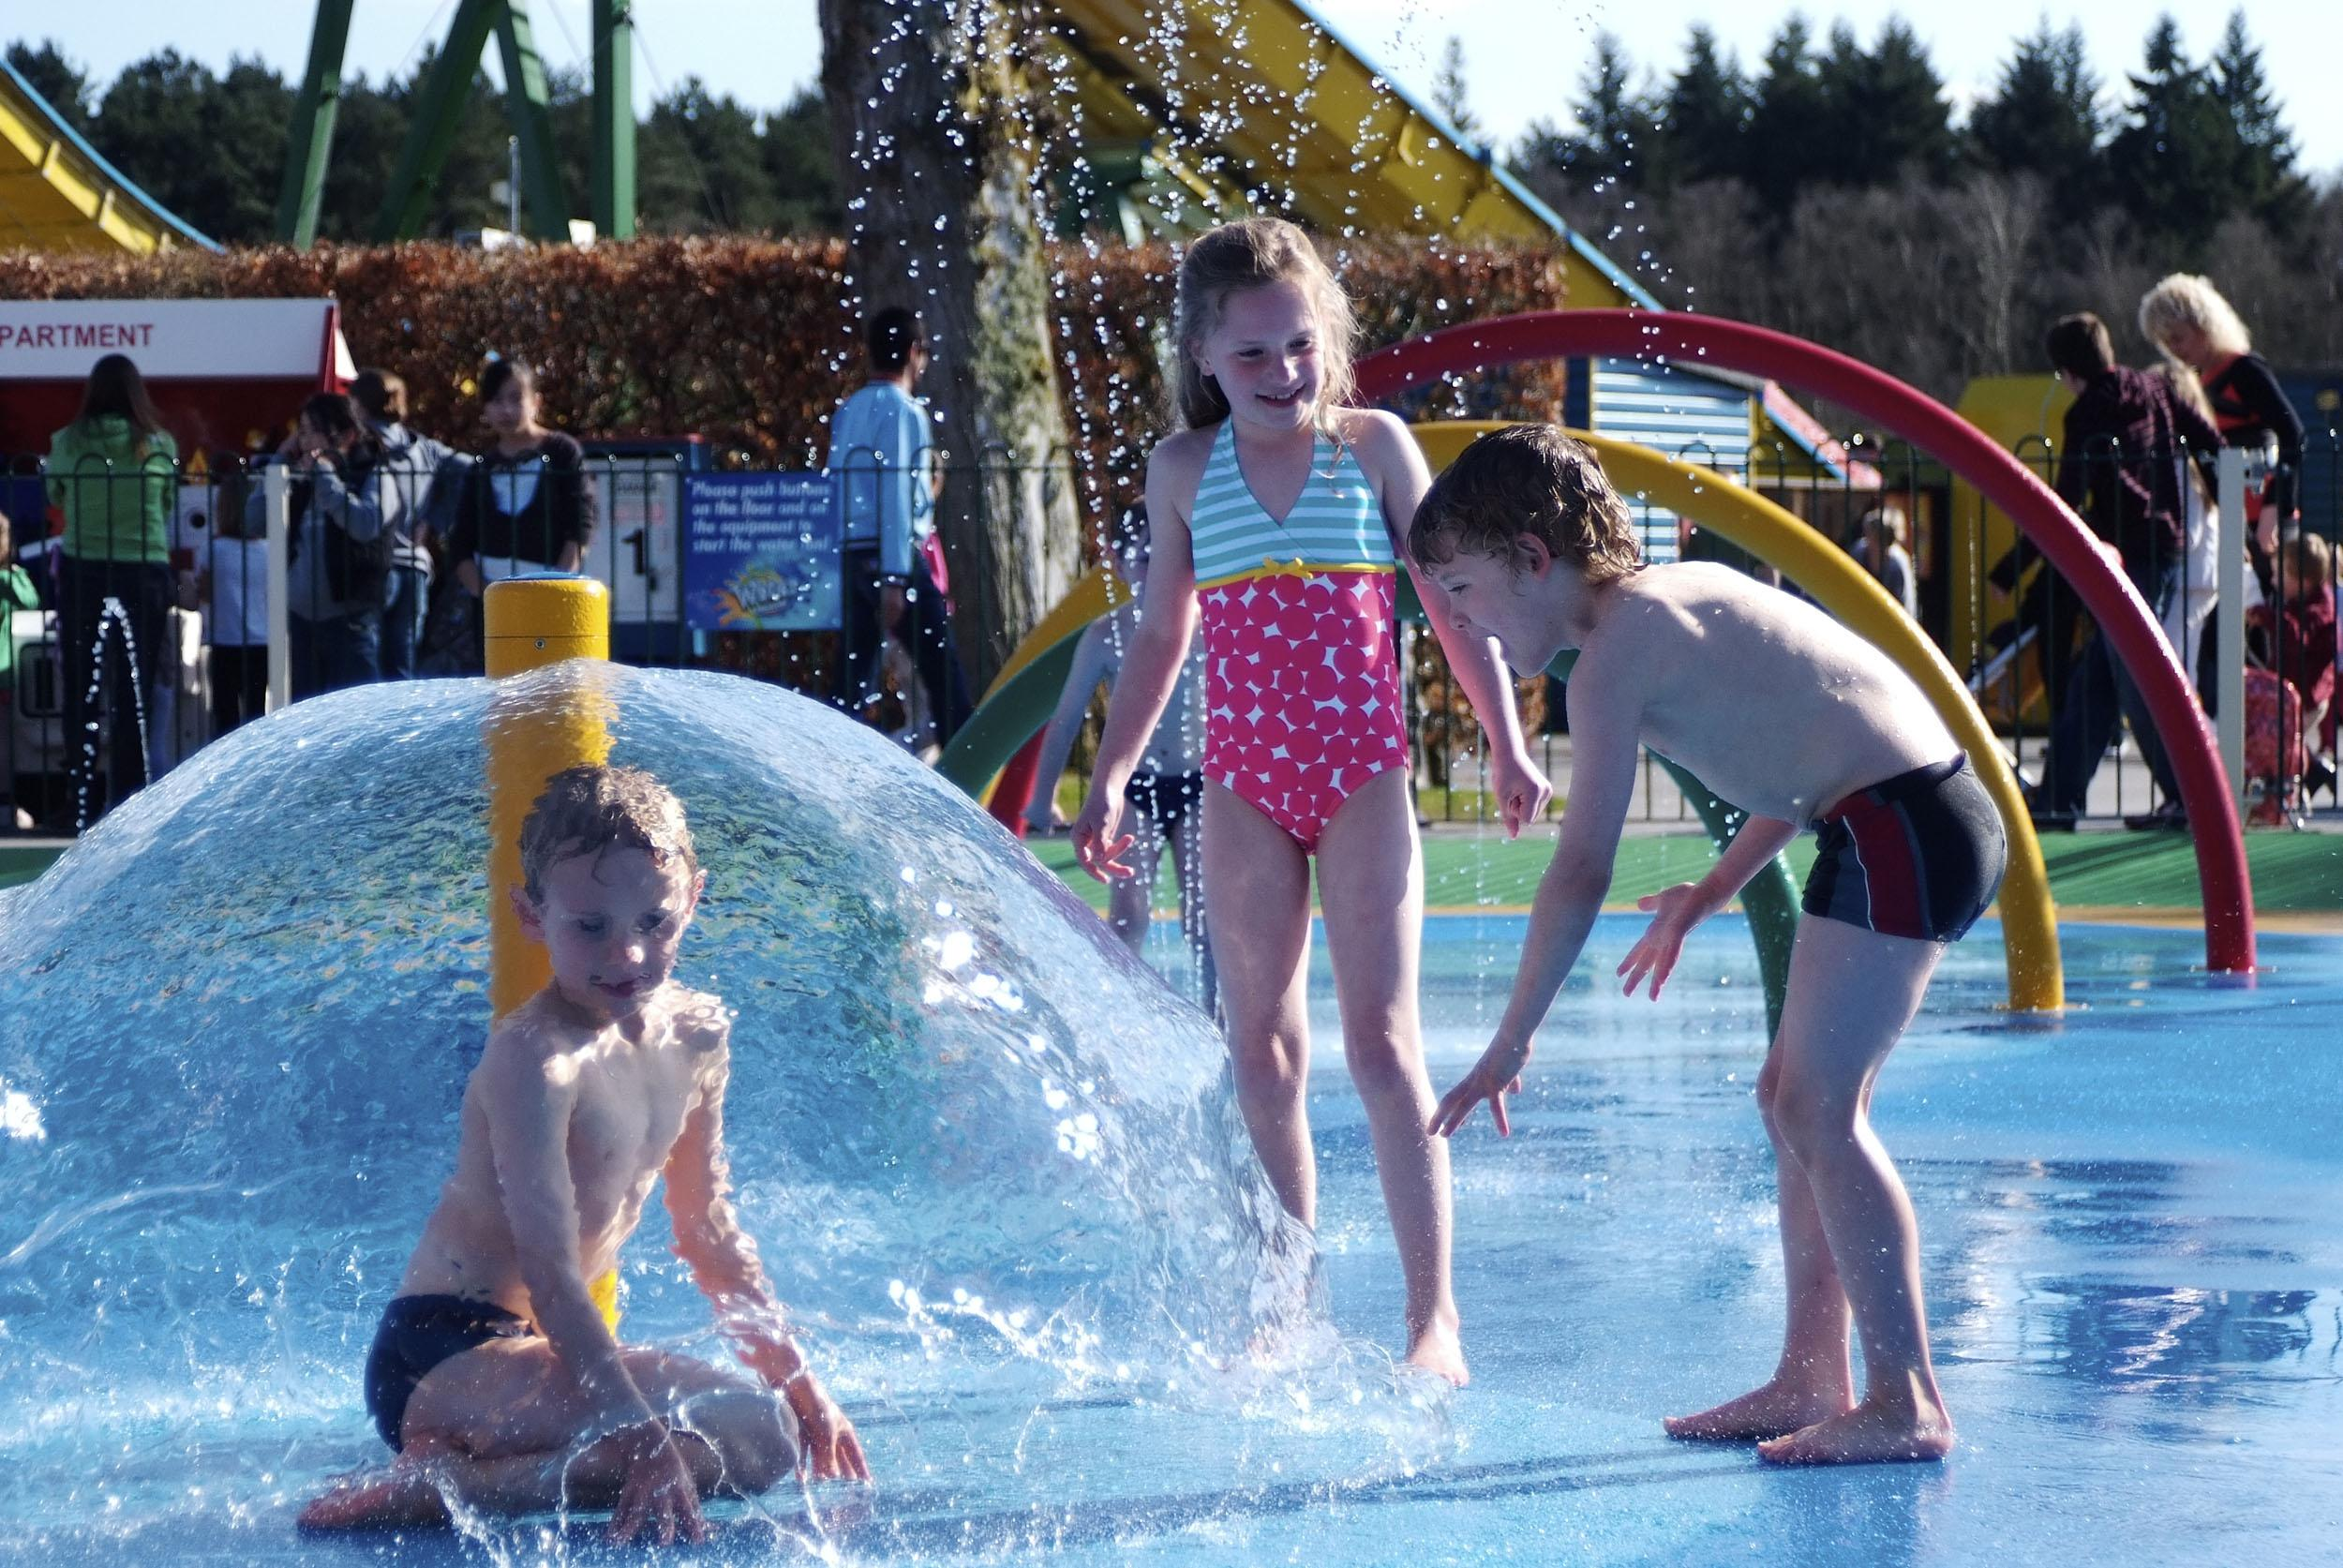 Get super soaked in our amazing water splash Parks